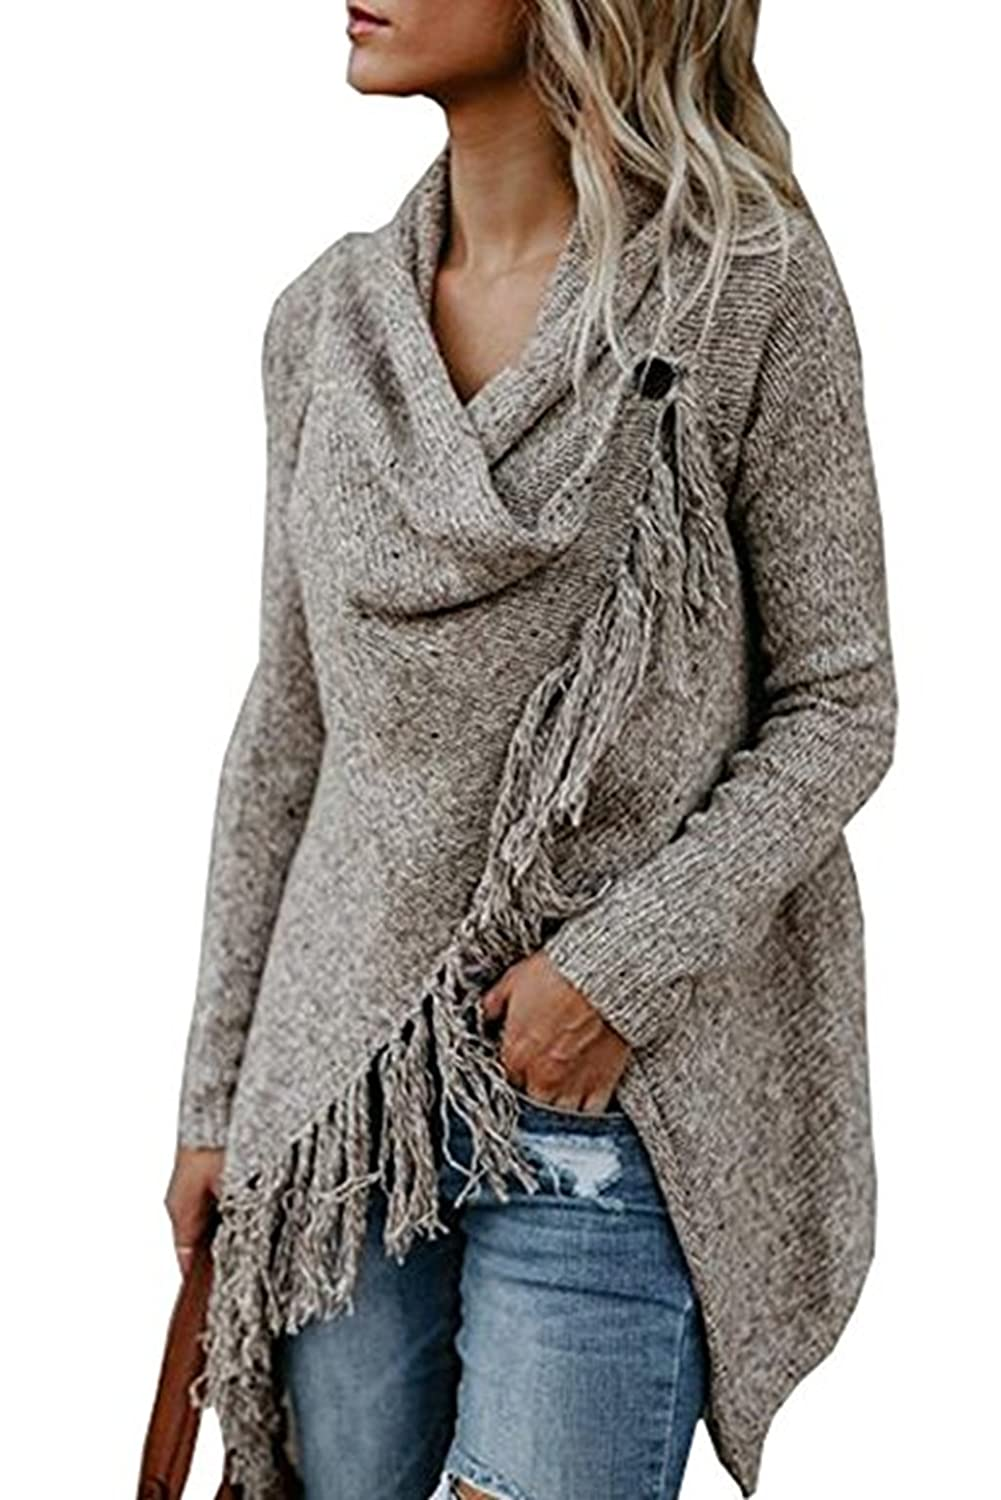 ZLYC Womens Knitted Faux Cashmere Fringe Poncho Blanket Wrap